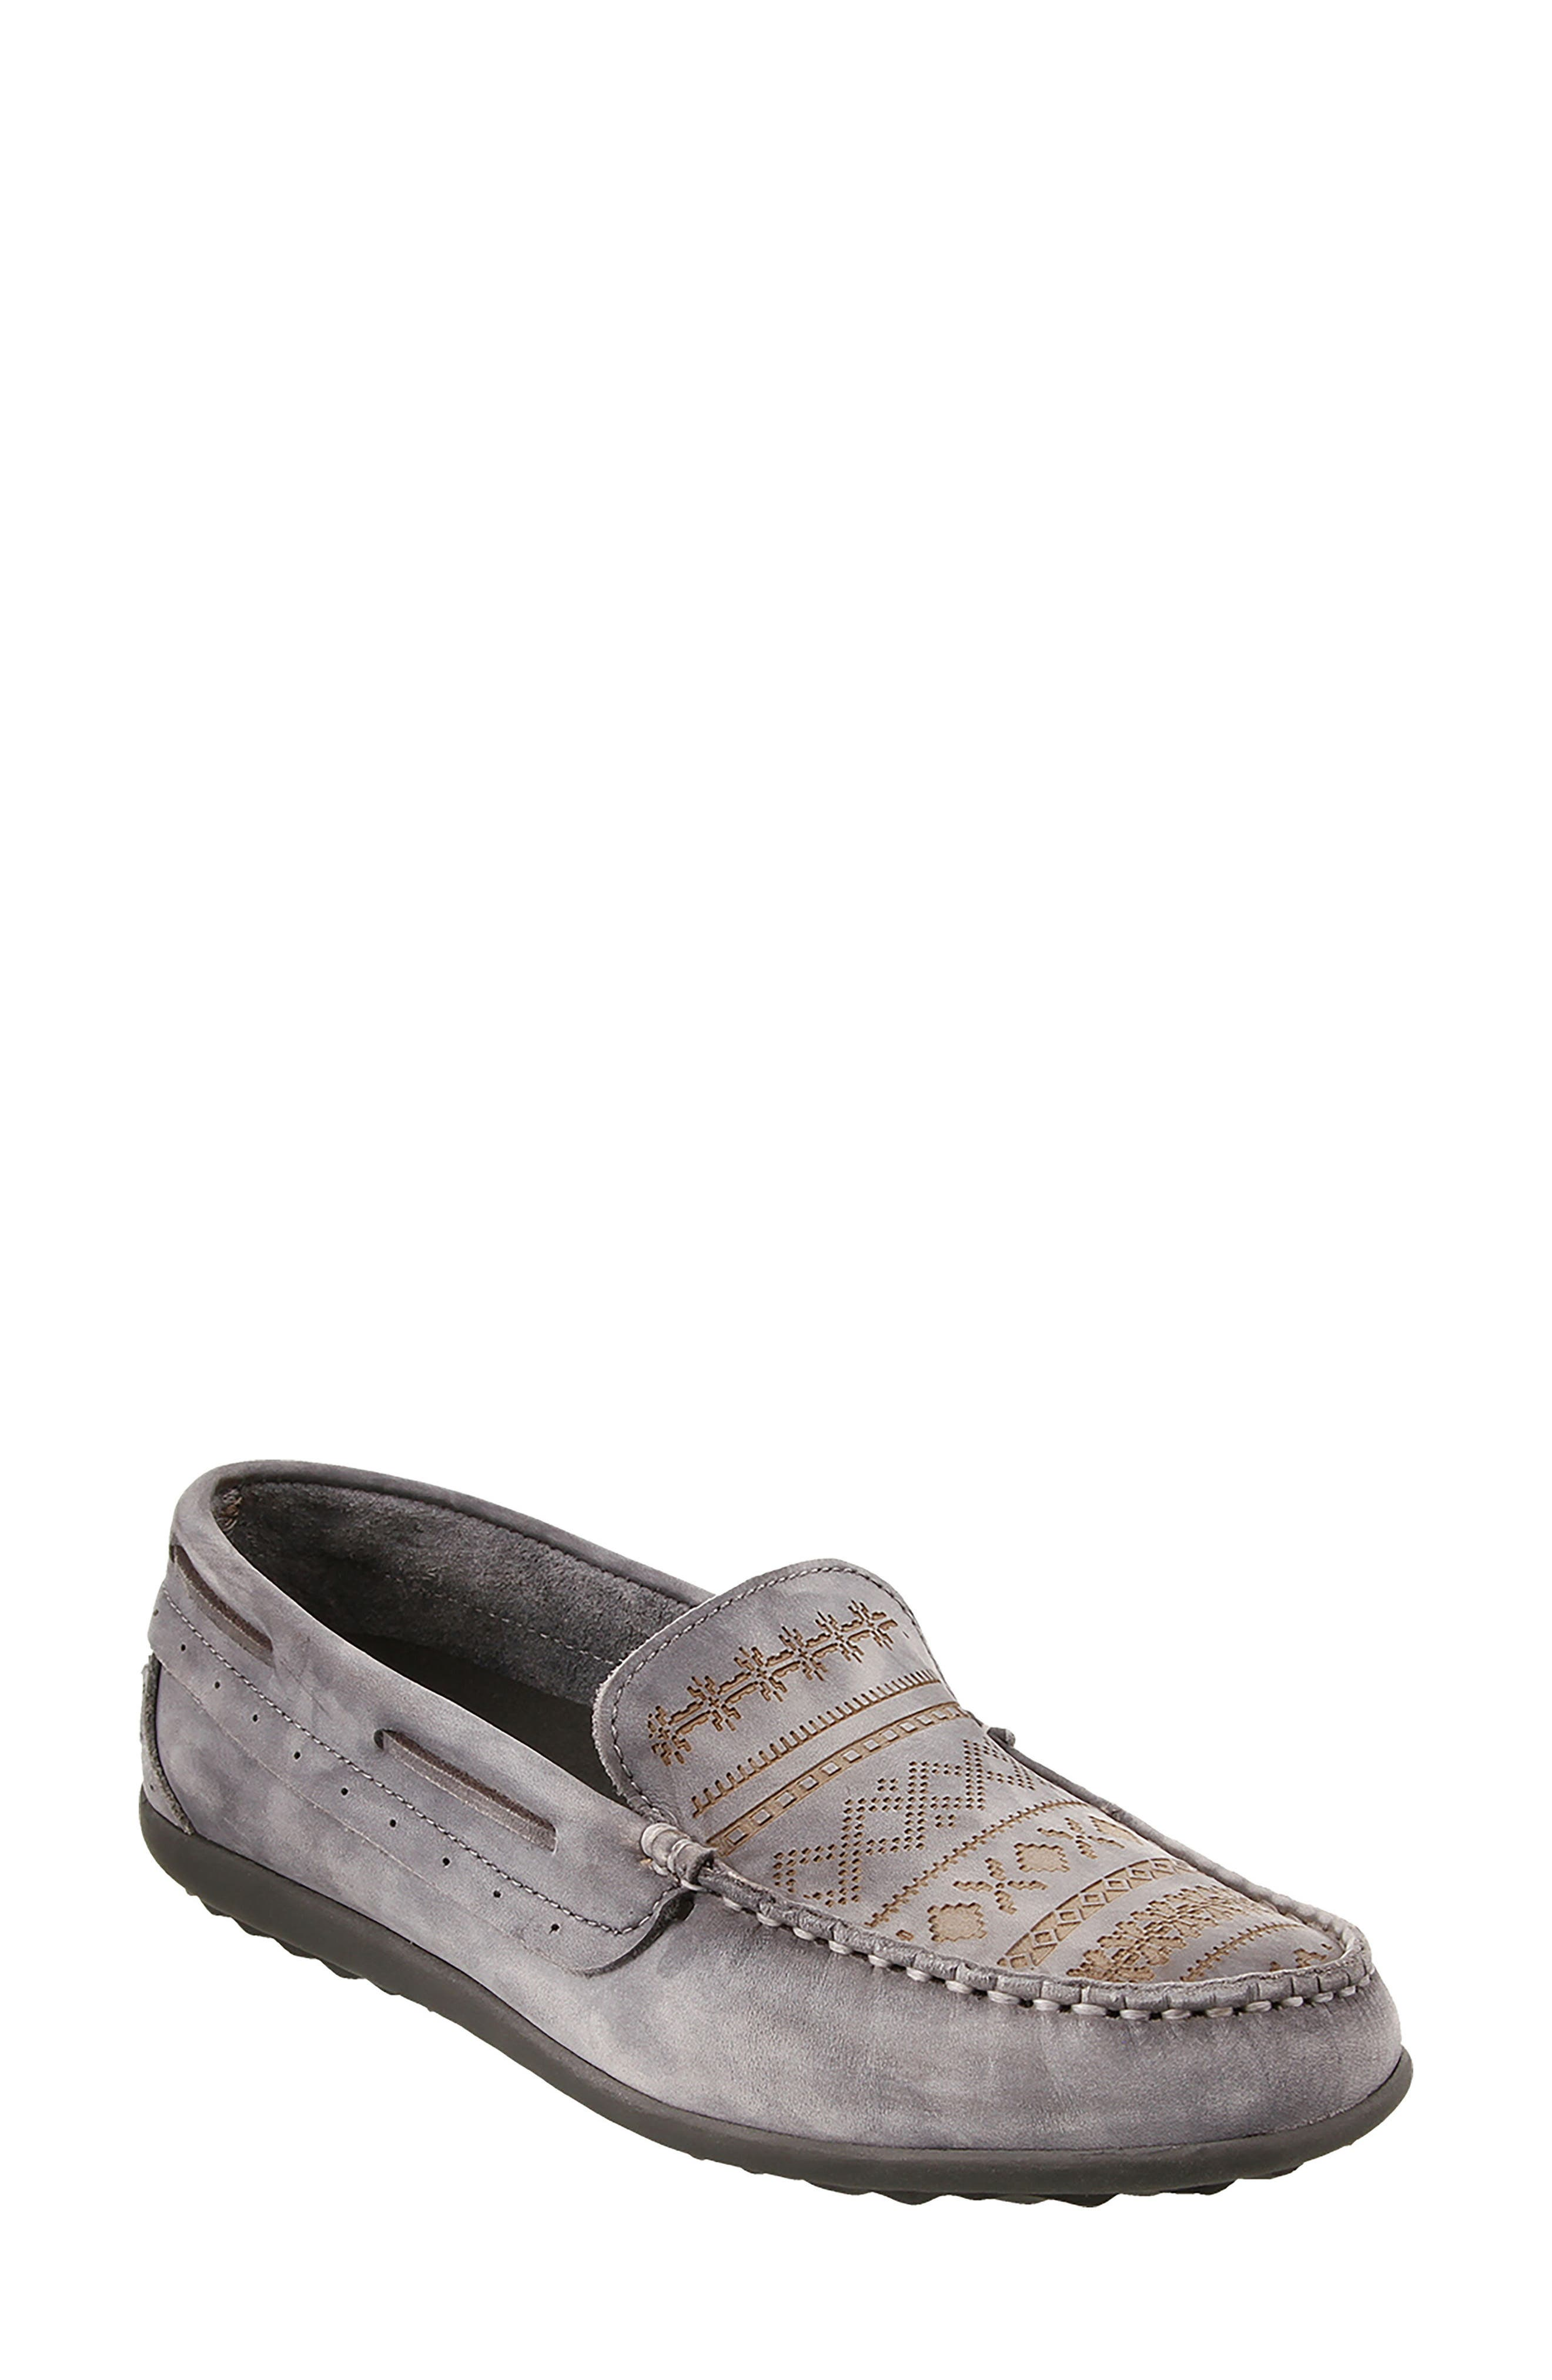 Heritage Moccasin Flat,                             Main thumbnail 1, color,                             STEEL GREY LEATHER